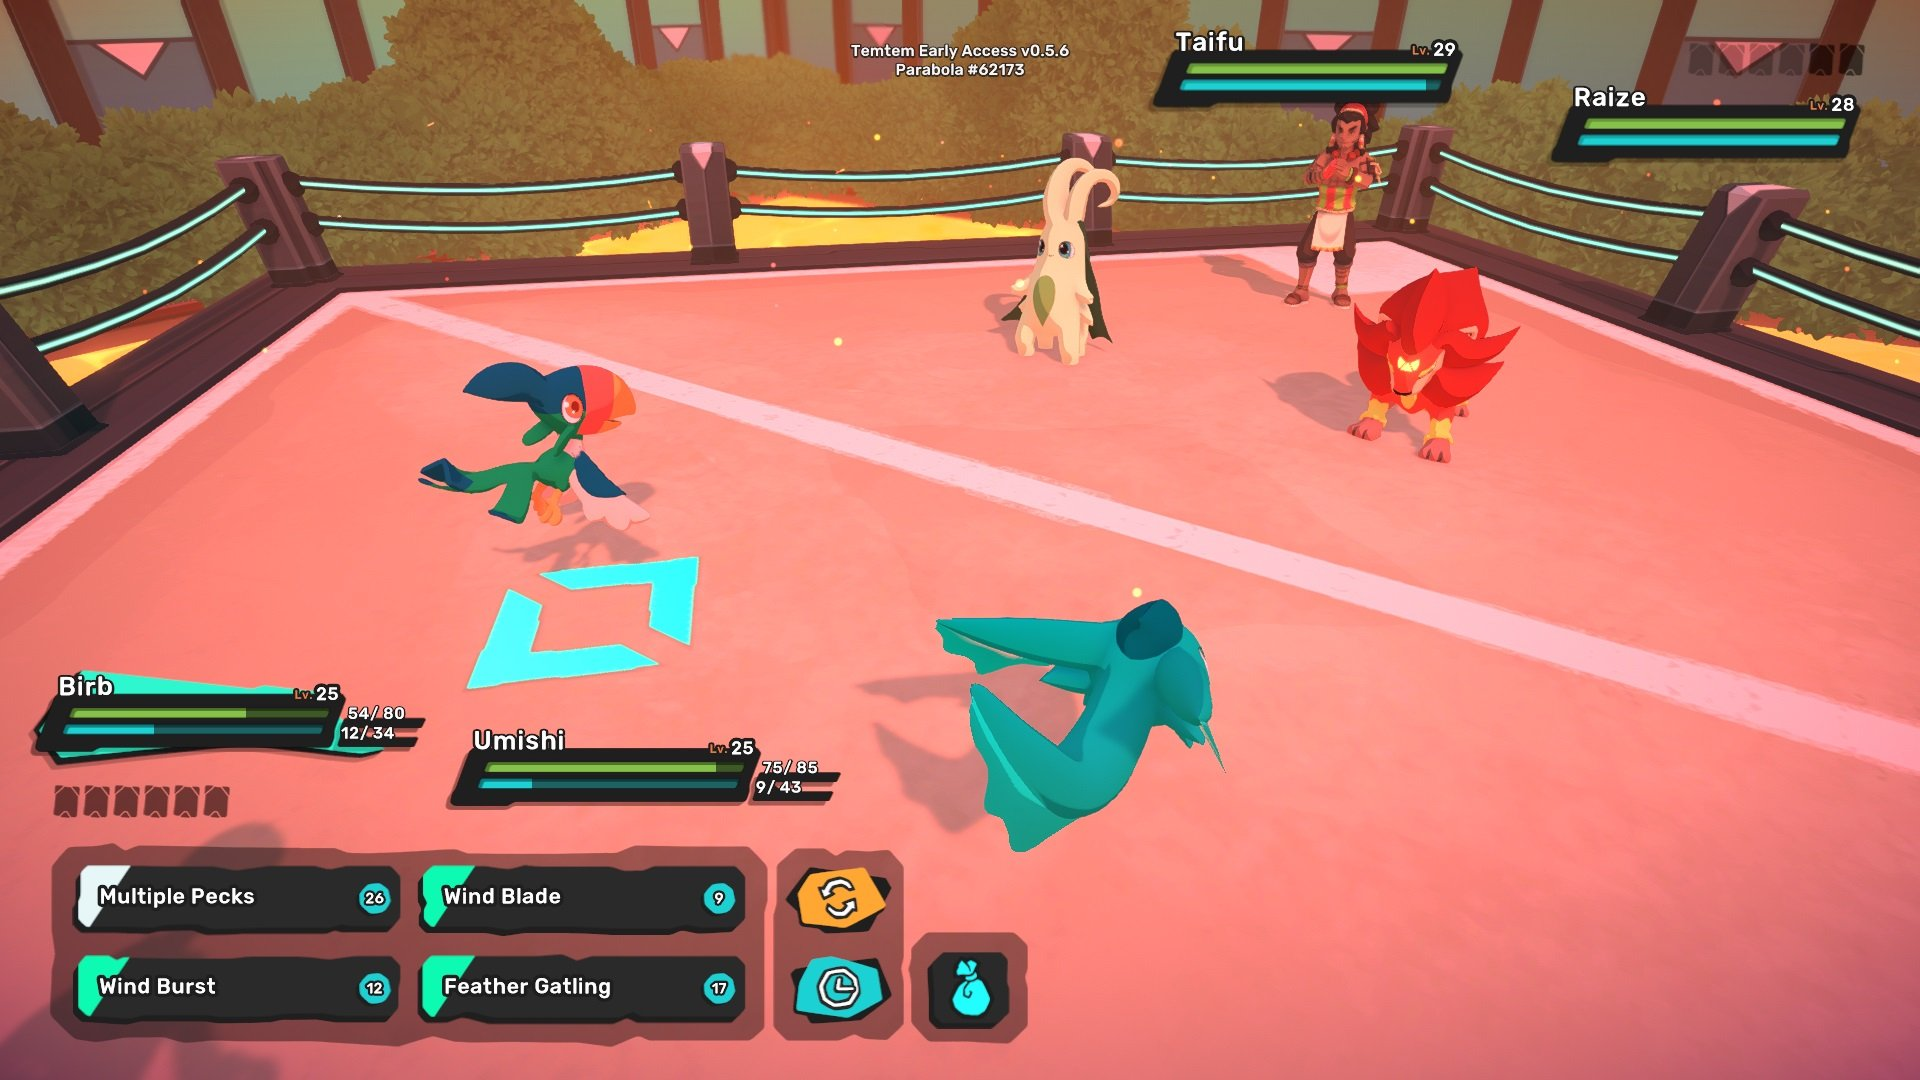 Rawiri has a powerful Raize. The best way to beat Raize in Temtem is with a Water Type.